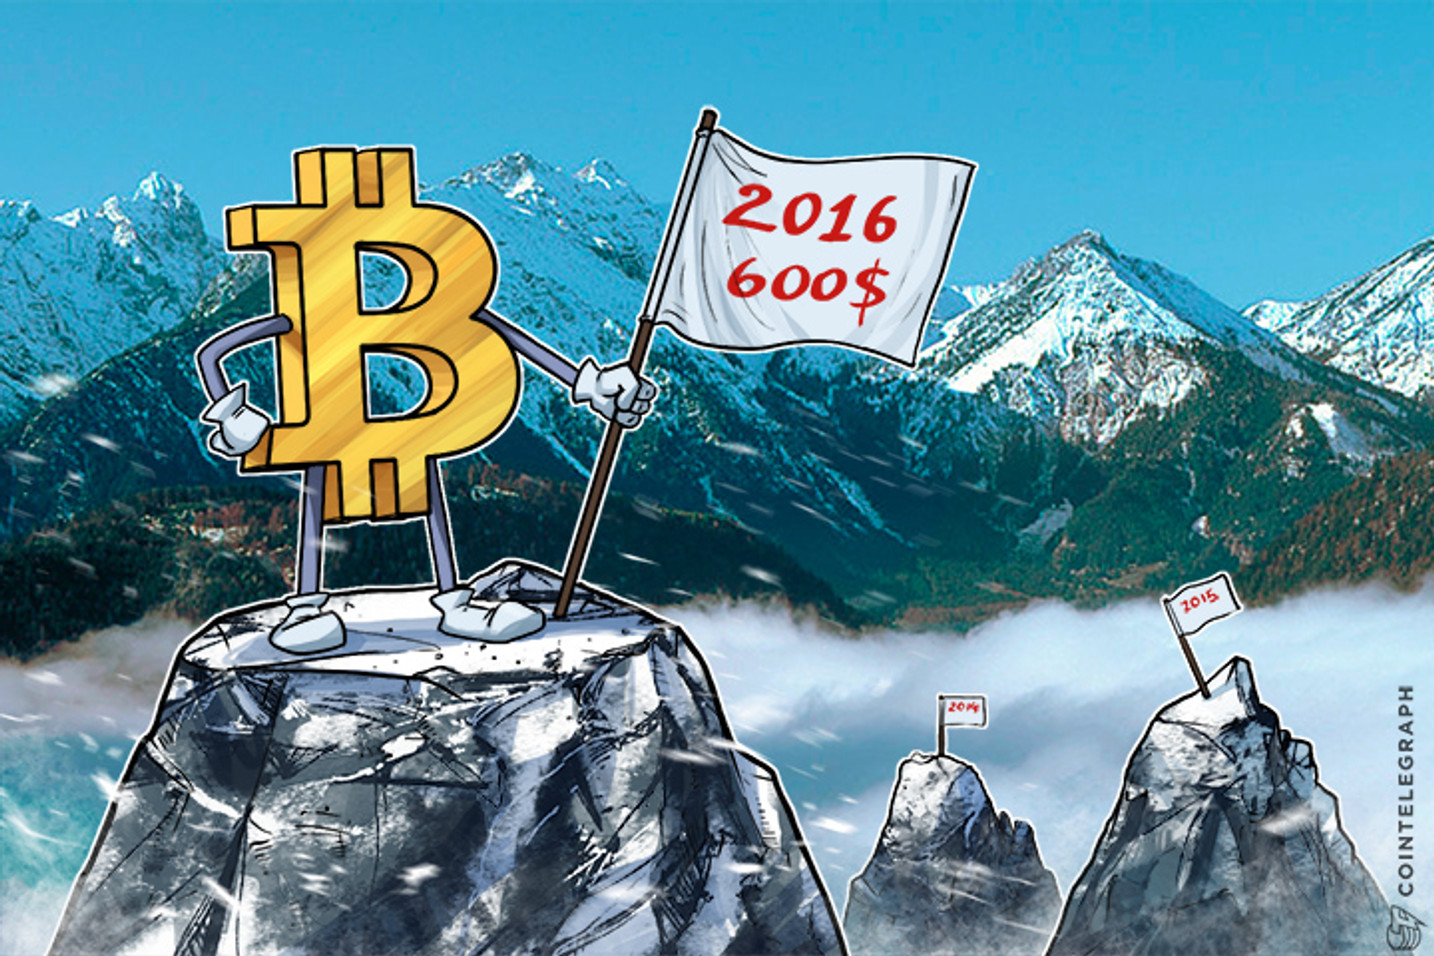 Bitcoin Price Exceeds $600, Highest in Almost Two Years